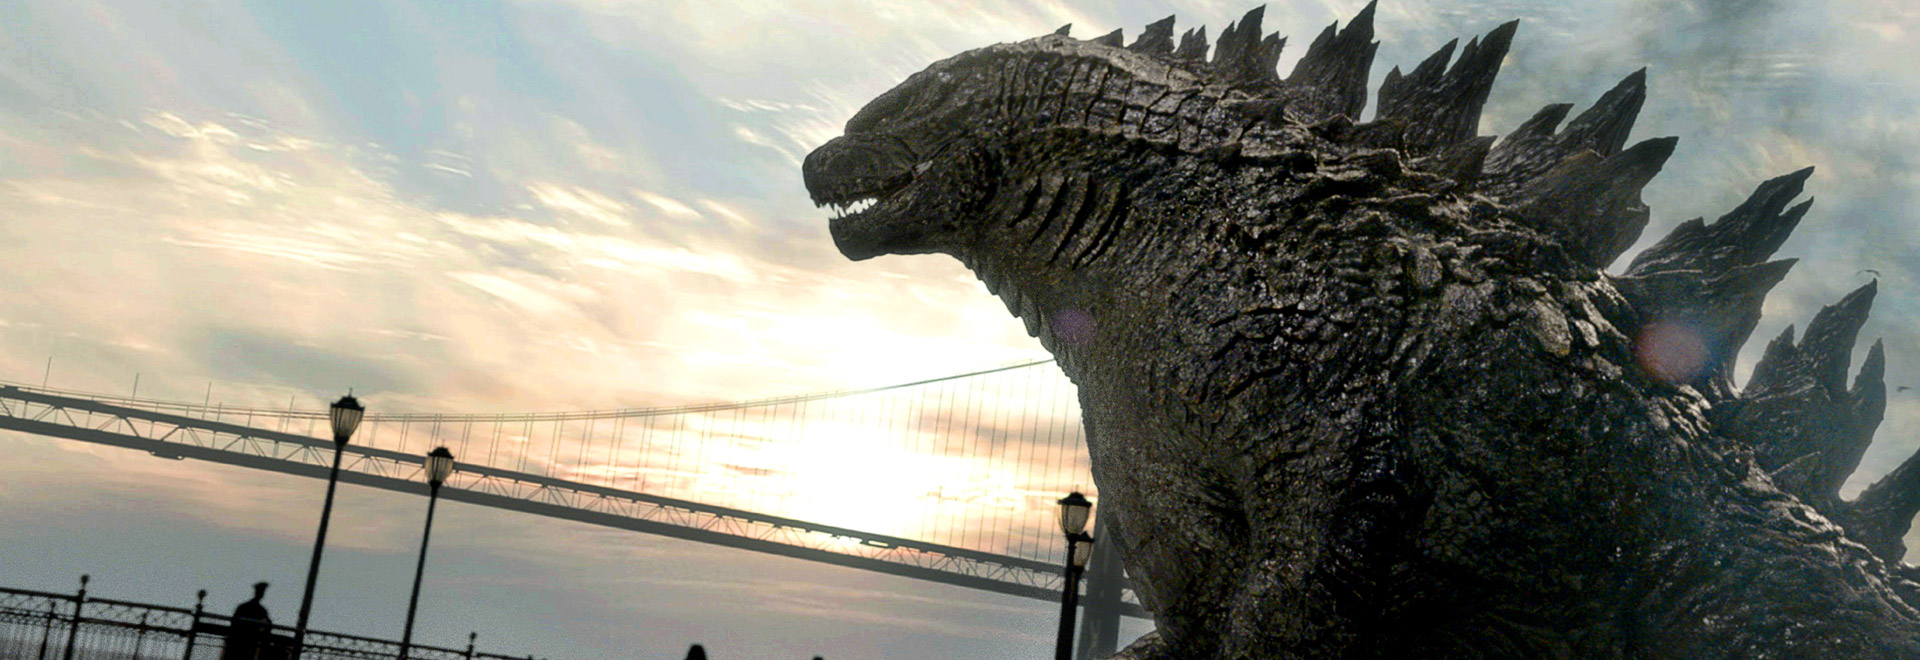 review, Godzilla, Godzilla, film, movie, latest movies, new movie, movie ratings, current movie reviews, latest films, recent movies, current movies, movie critics, new movie reviews, latest movie reviews, latest movies out, the latest movies, review film, latest cinema releases, Australian reviews, cinema, cinema reviews, Aaron Taylor-Johnson, Elizabeth Olsen, Juliette Binoche, David Strathairn, Bryan Cranston, Ken Watanabe, Gareth Edwards